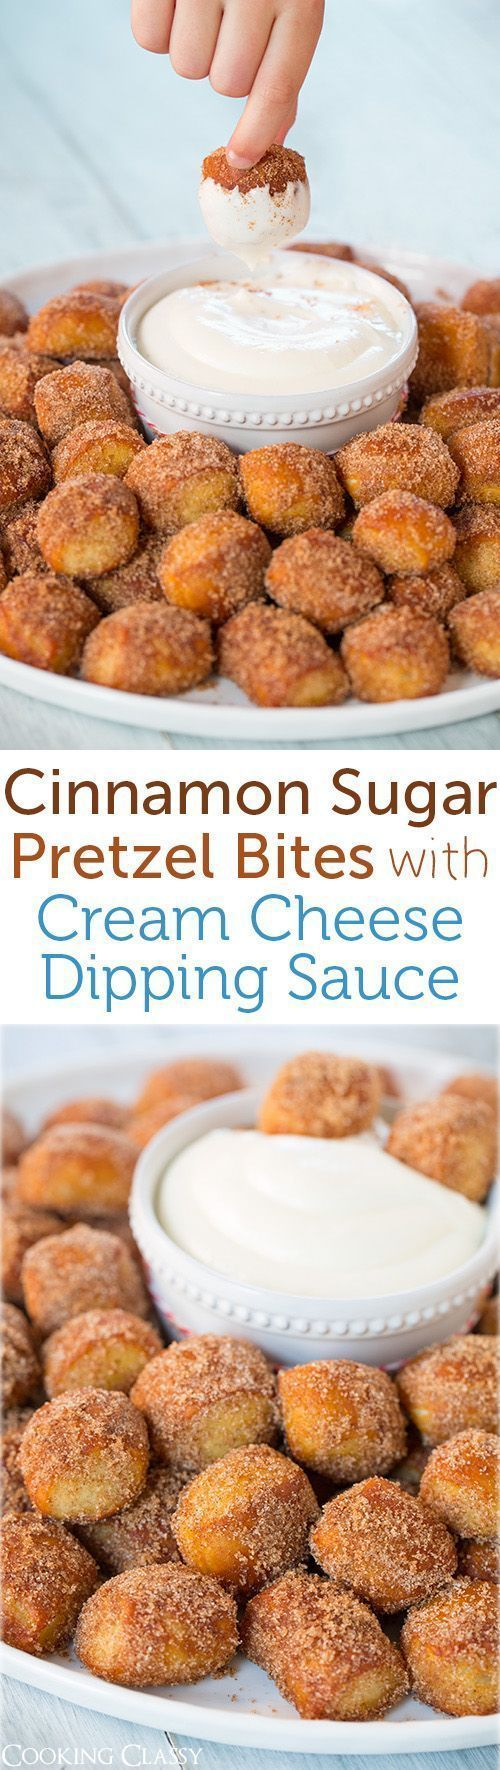 Copycat Auntie Anne's Cinnamon Sugar Pretzel Bites with Cream Cheese Dipping Sauce